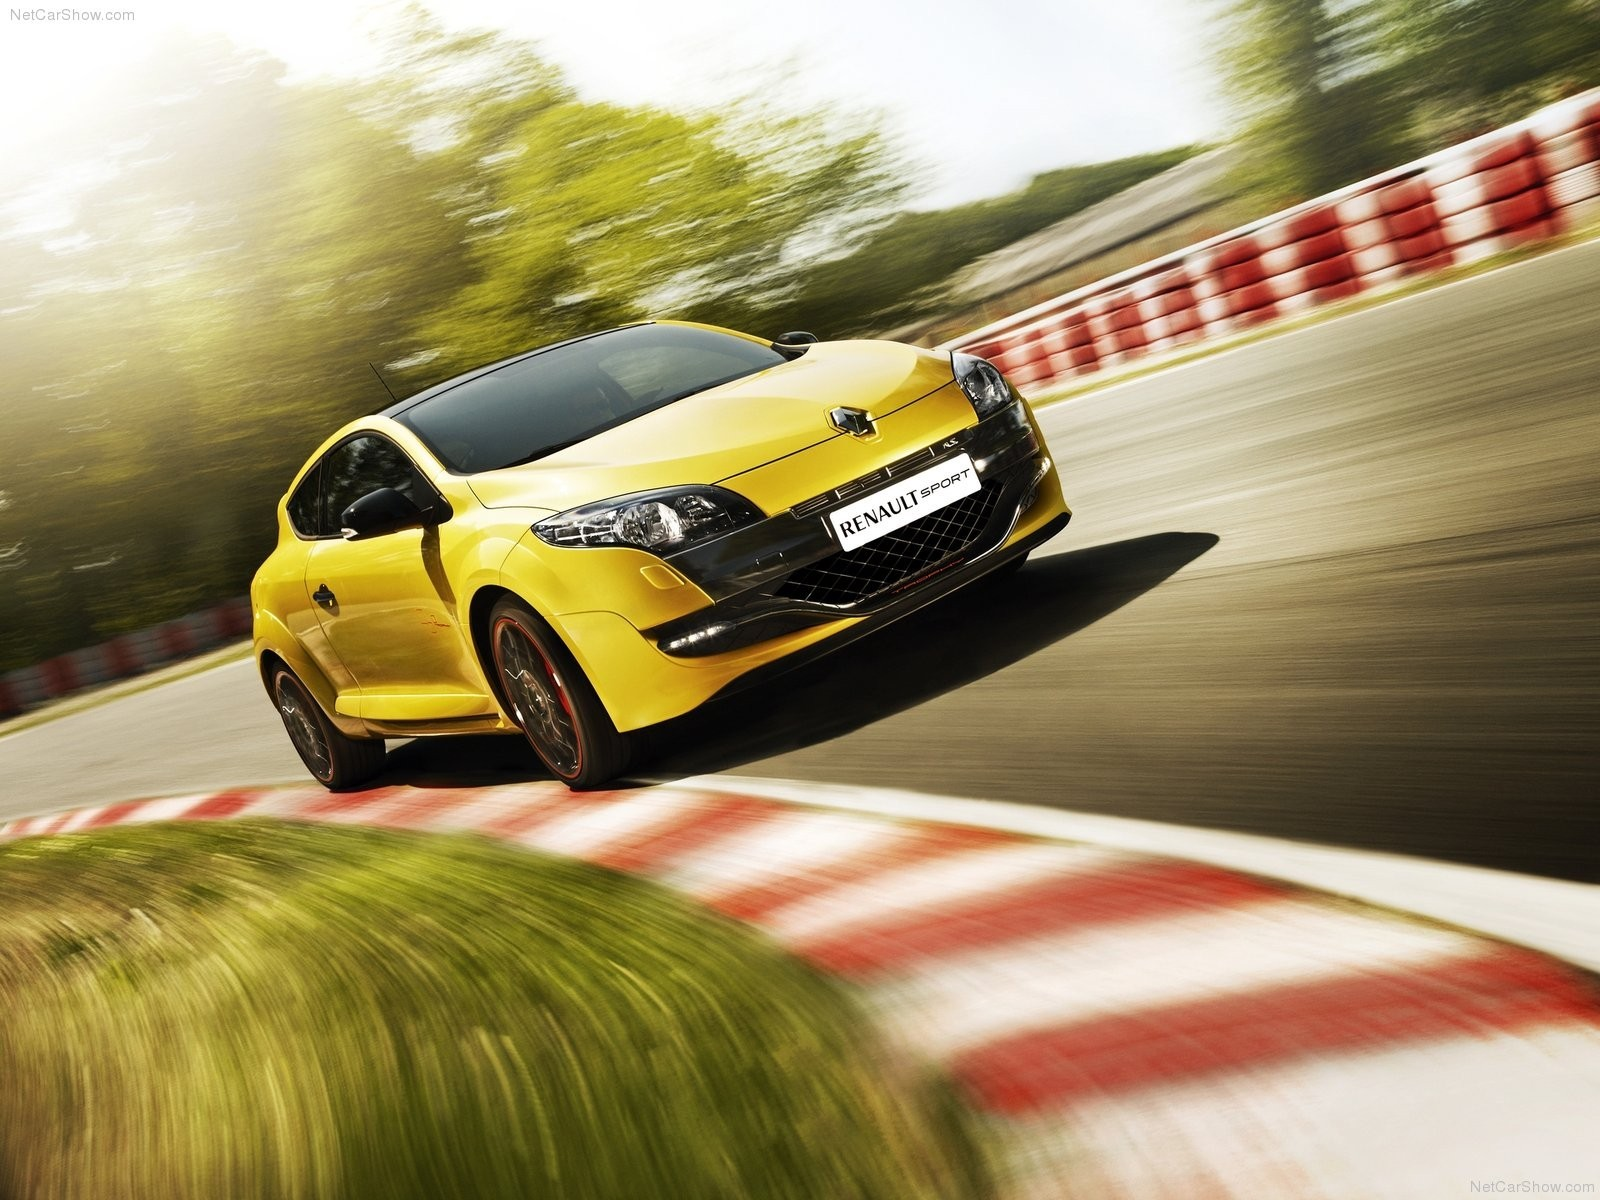 cars Renault Megane RS HD Wallpaper